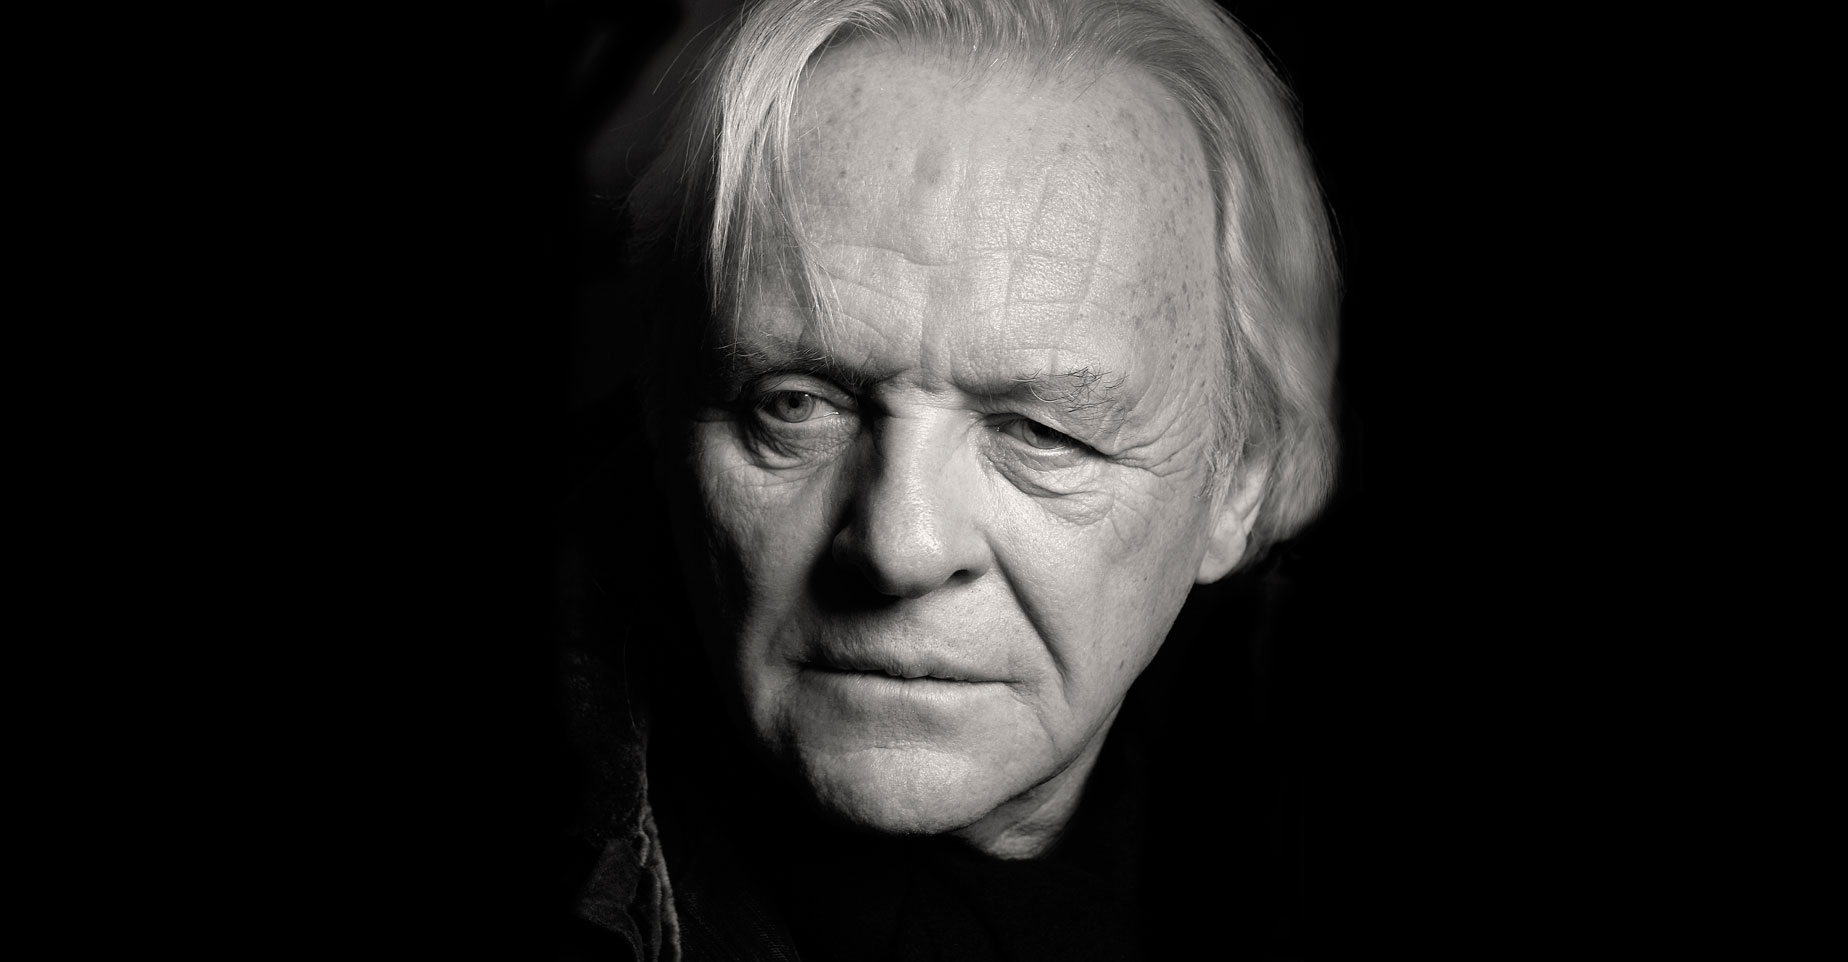 Резултат с изображение за anthony hopkins hd